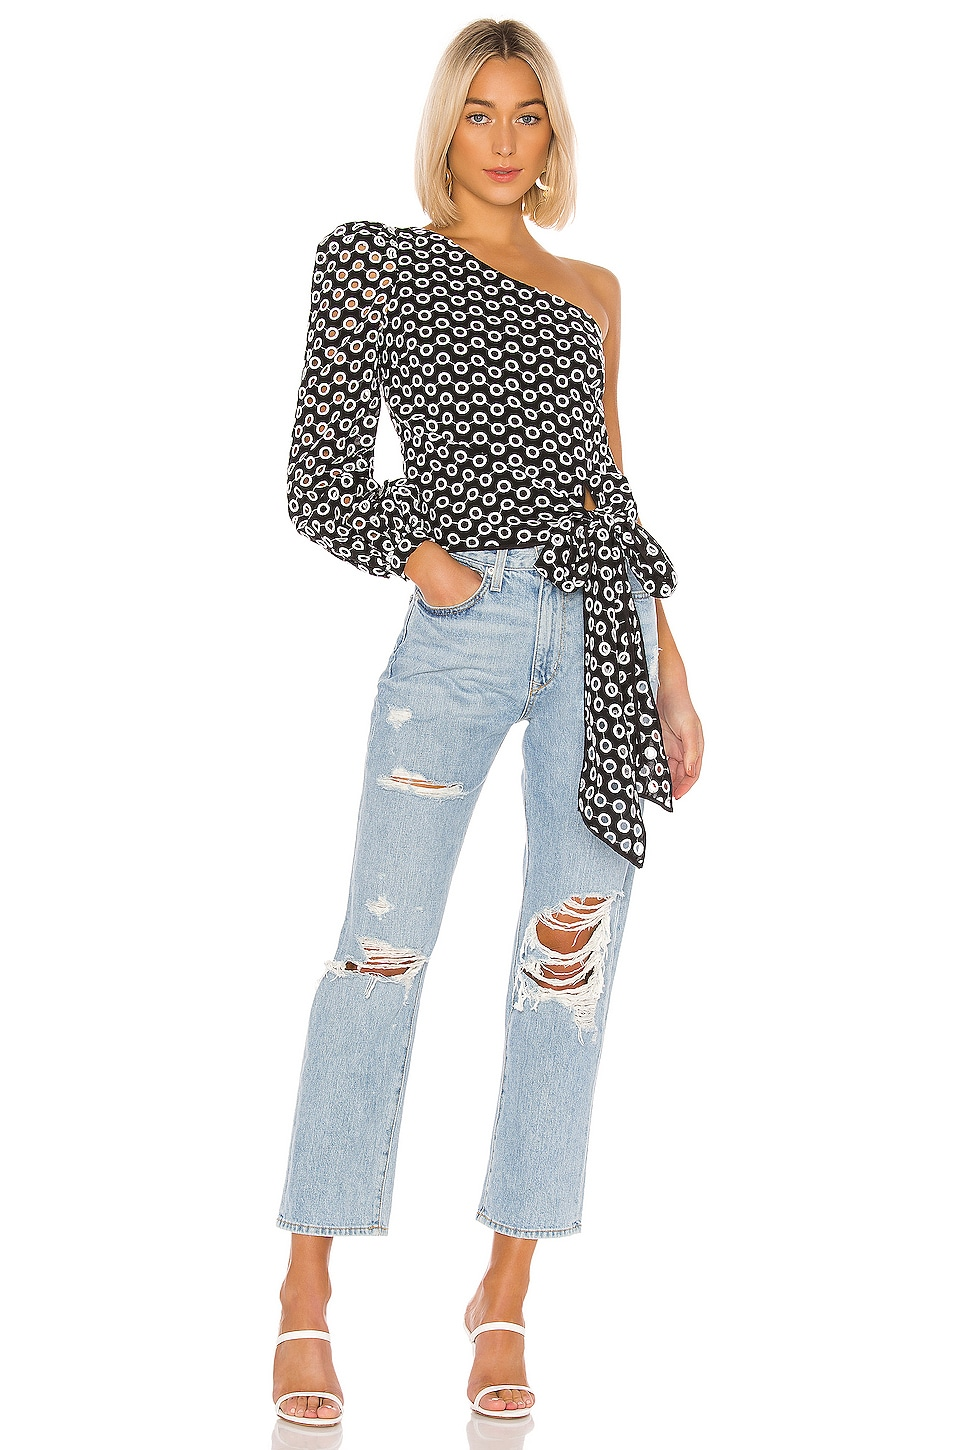 Lovers + Friends Kendall Blouse in Black & White